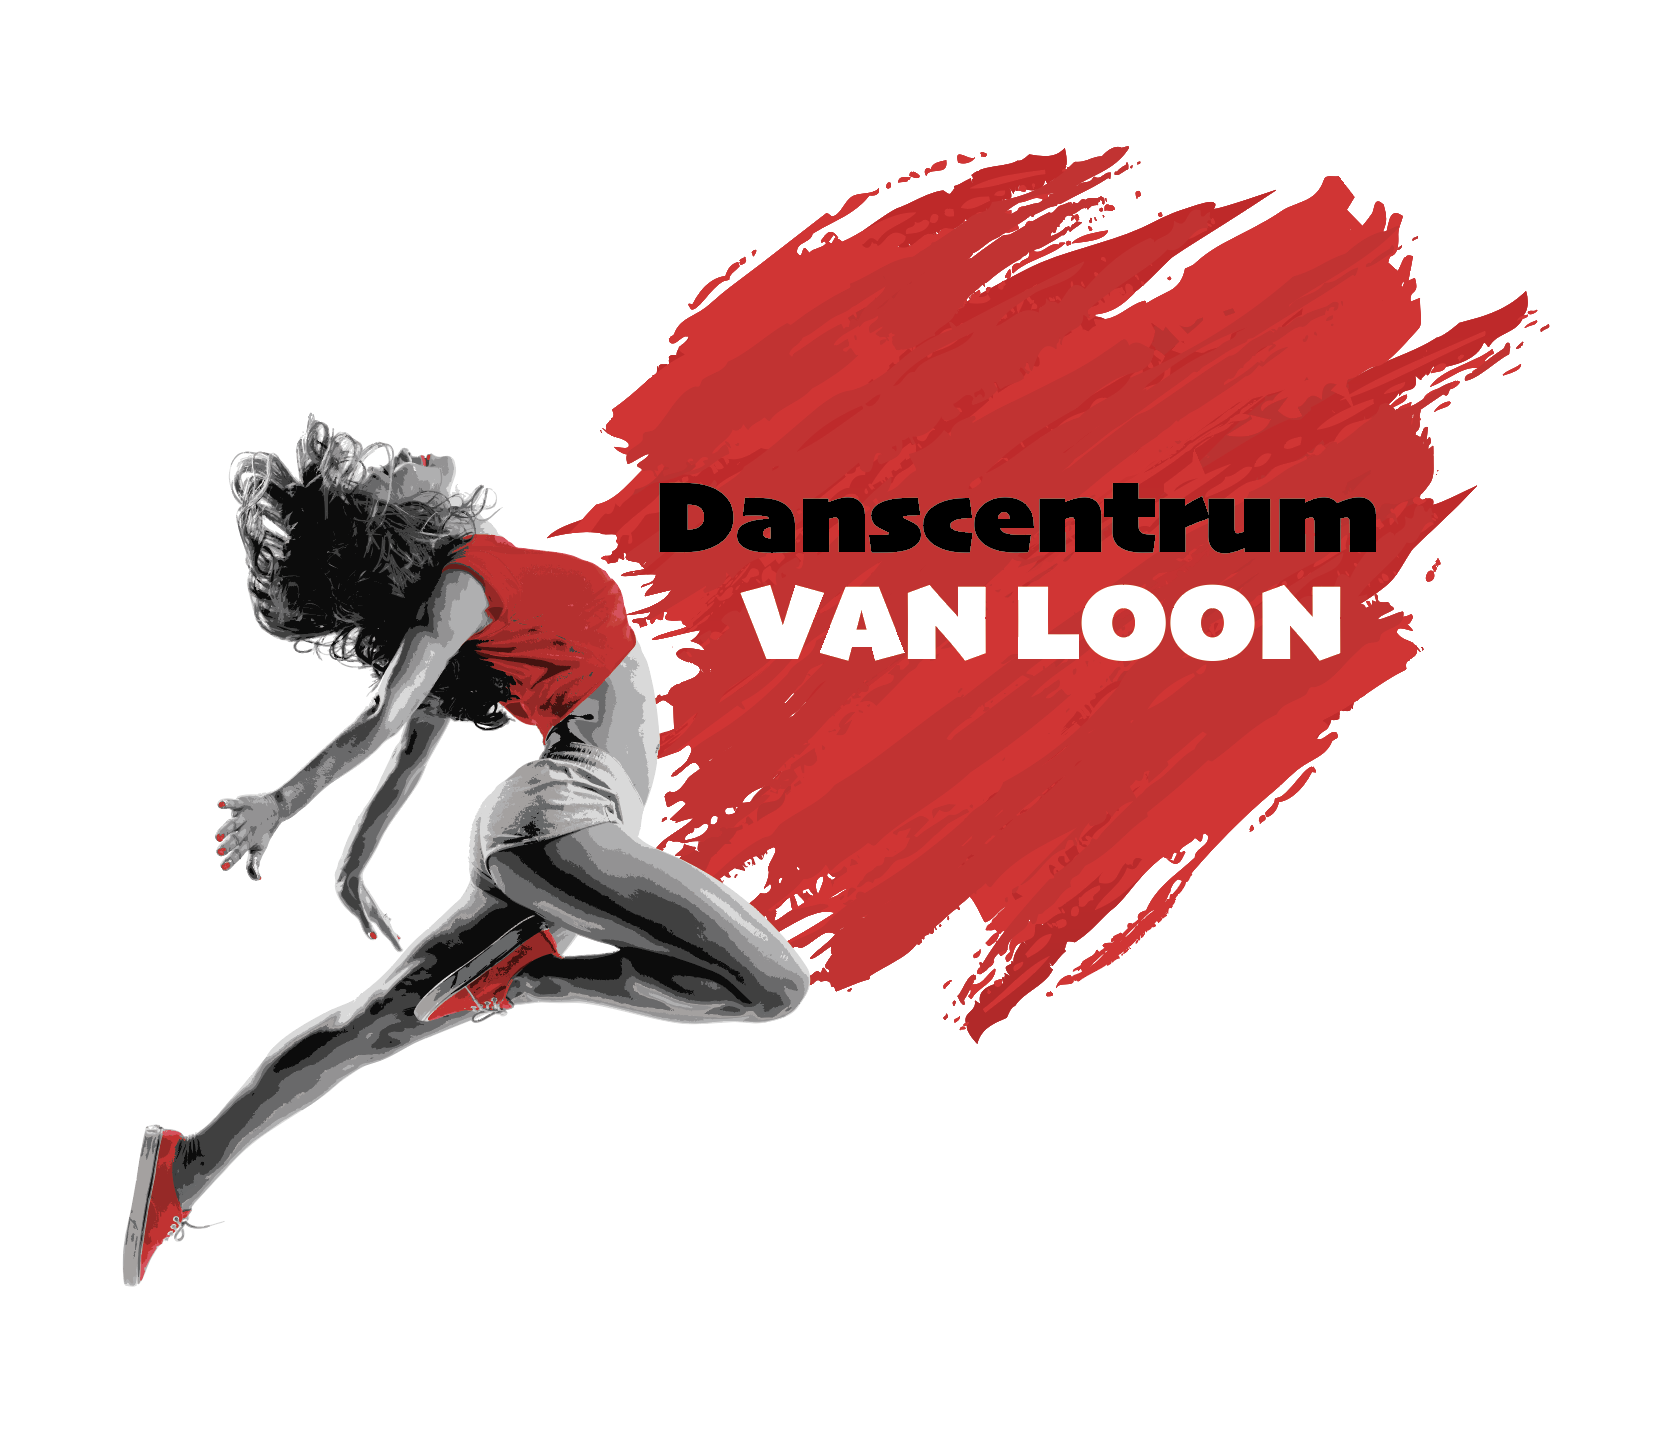 Danscentrum van Loon